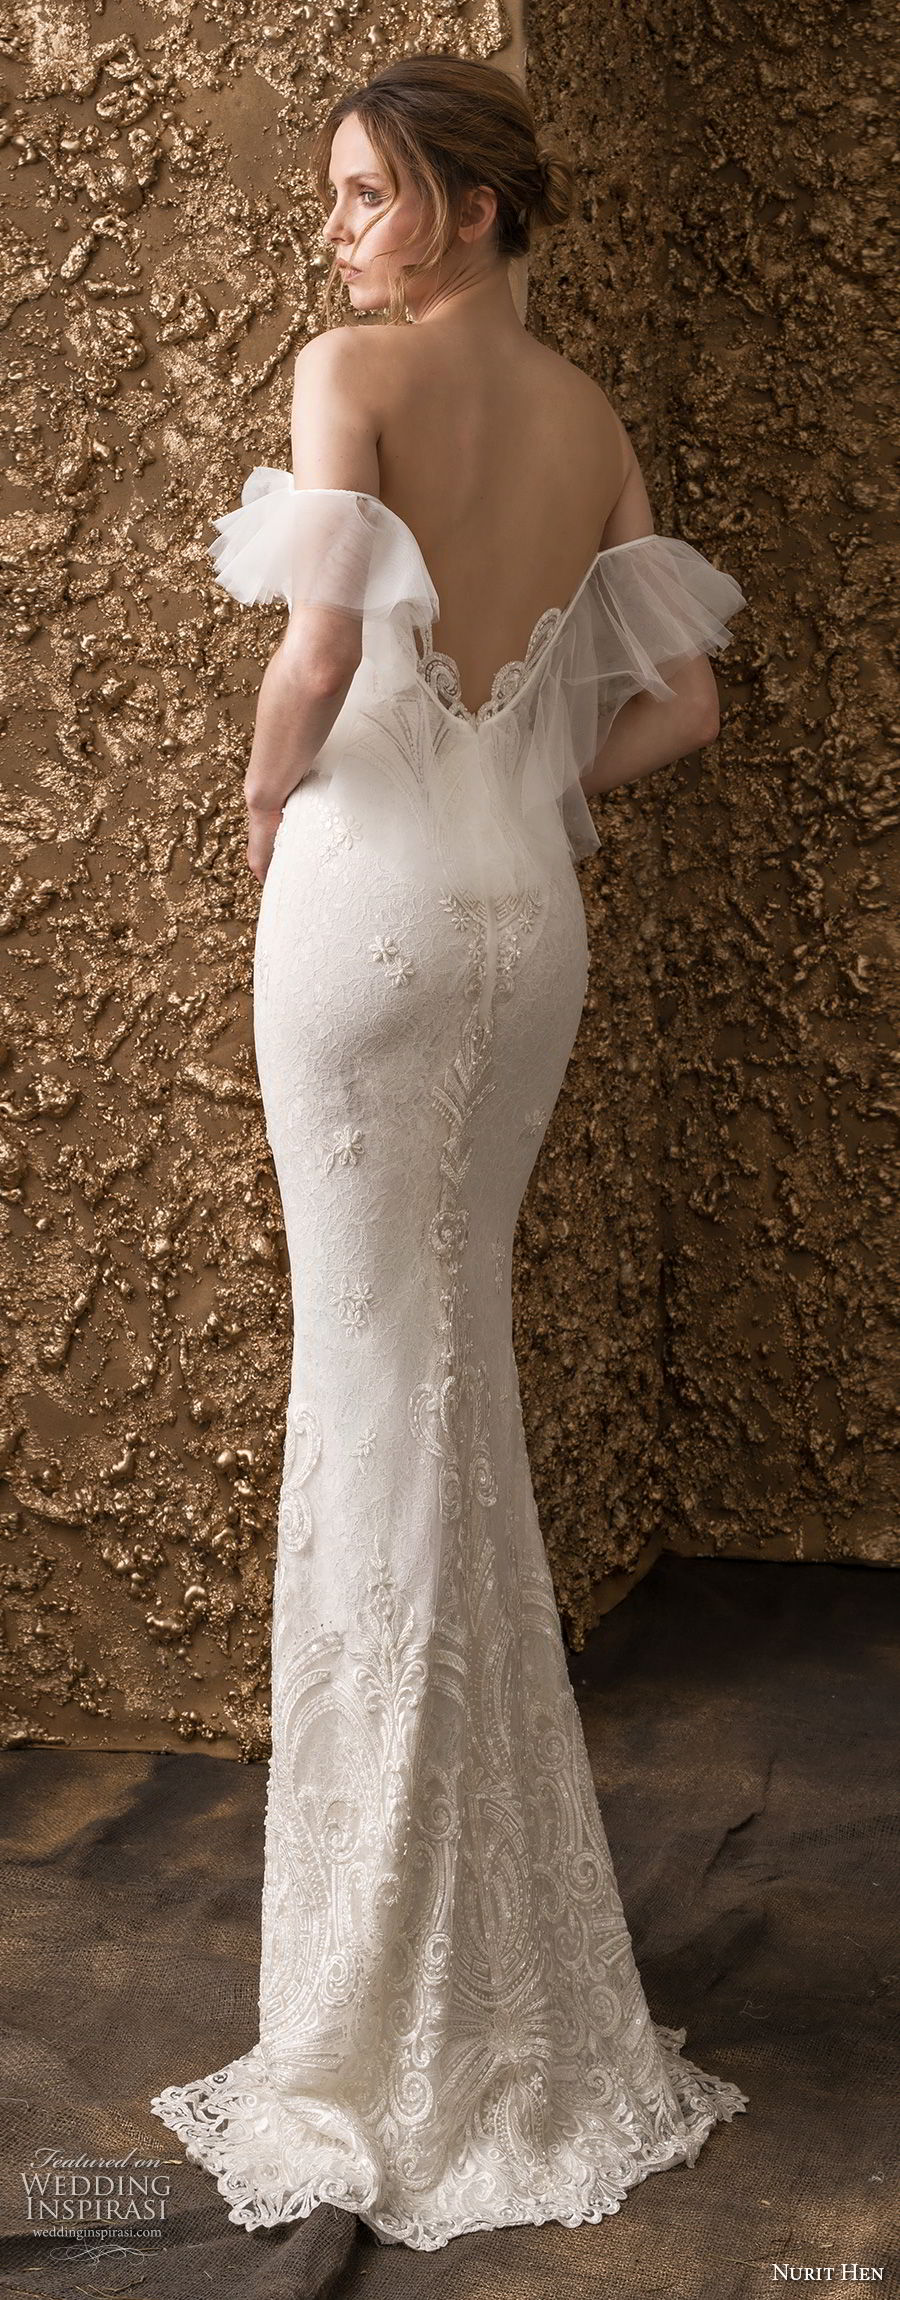 nurit hen 2018 bridal off the shoulder deep sweetheart neckline heavily embellished bodice romantic sheath wedding dress sweep train (14) bv